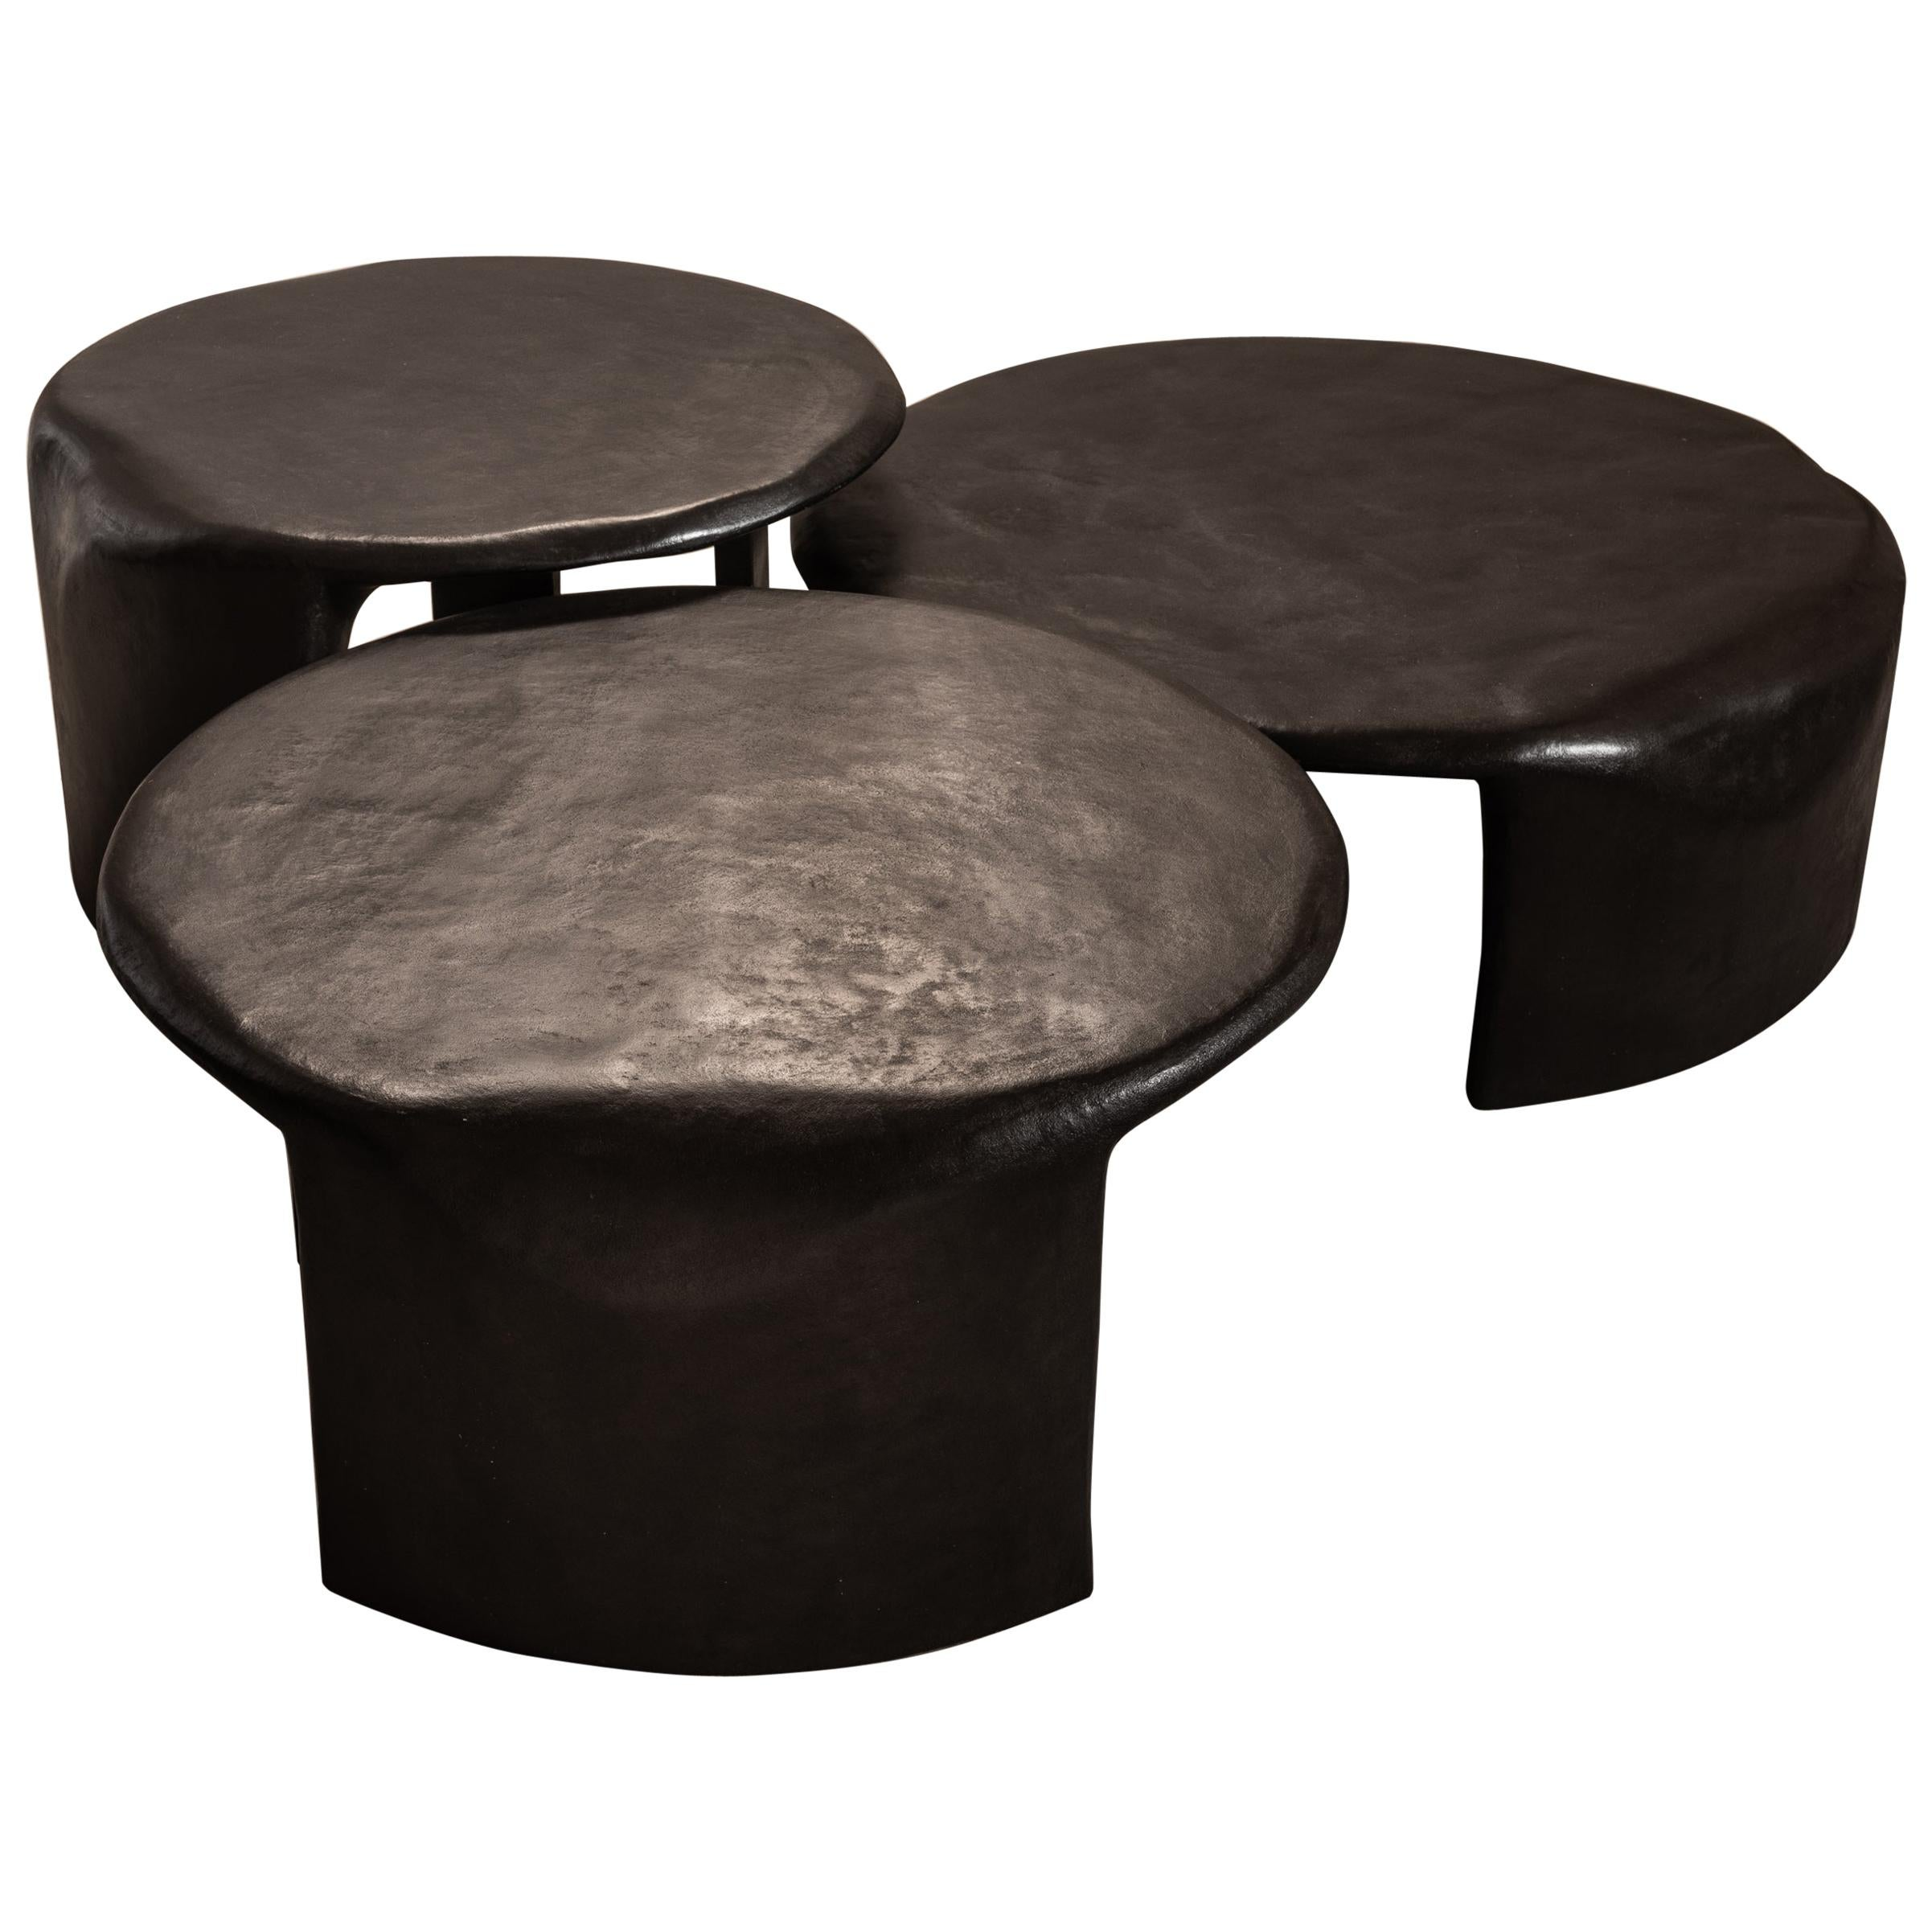 Bellagio Coffee Table Set by Studio Emblématique